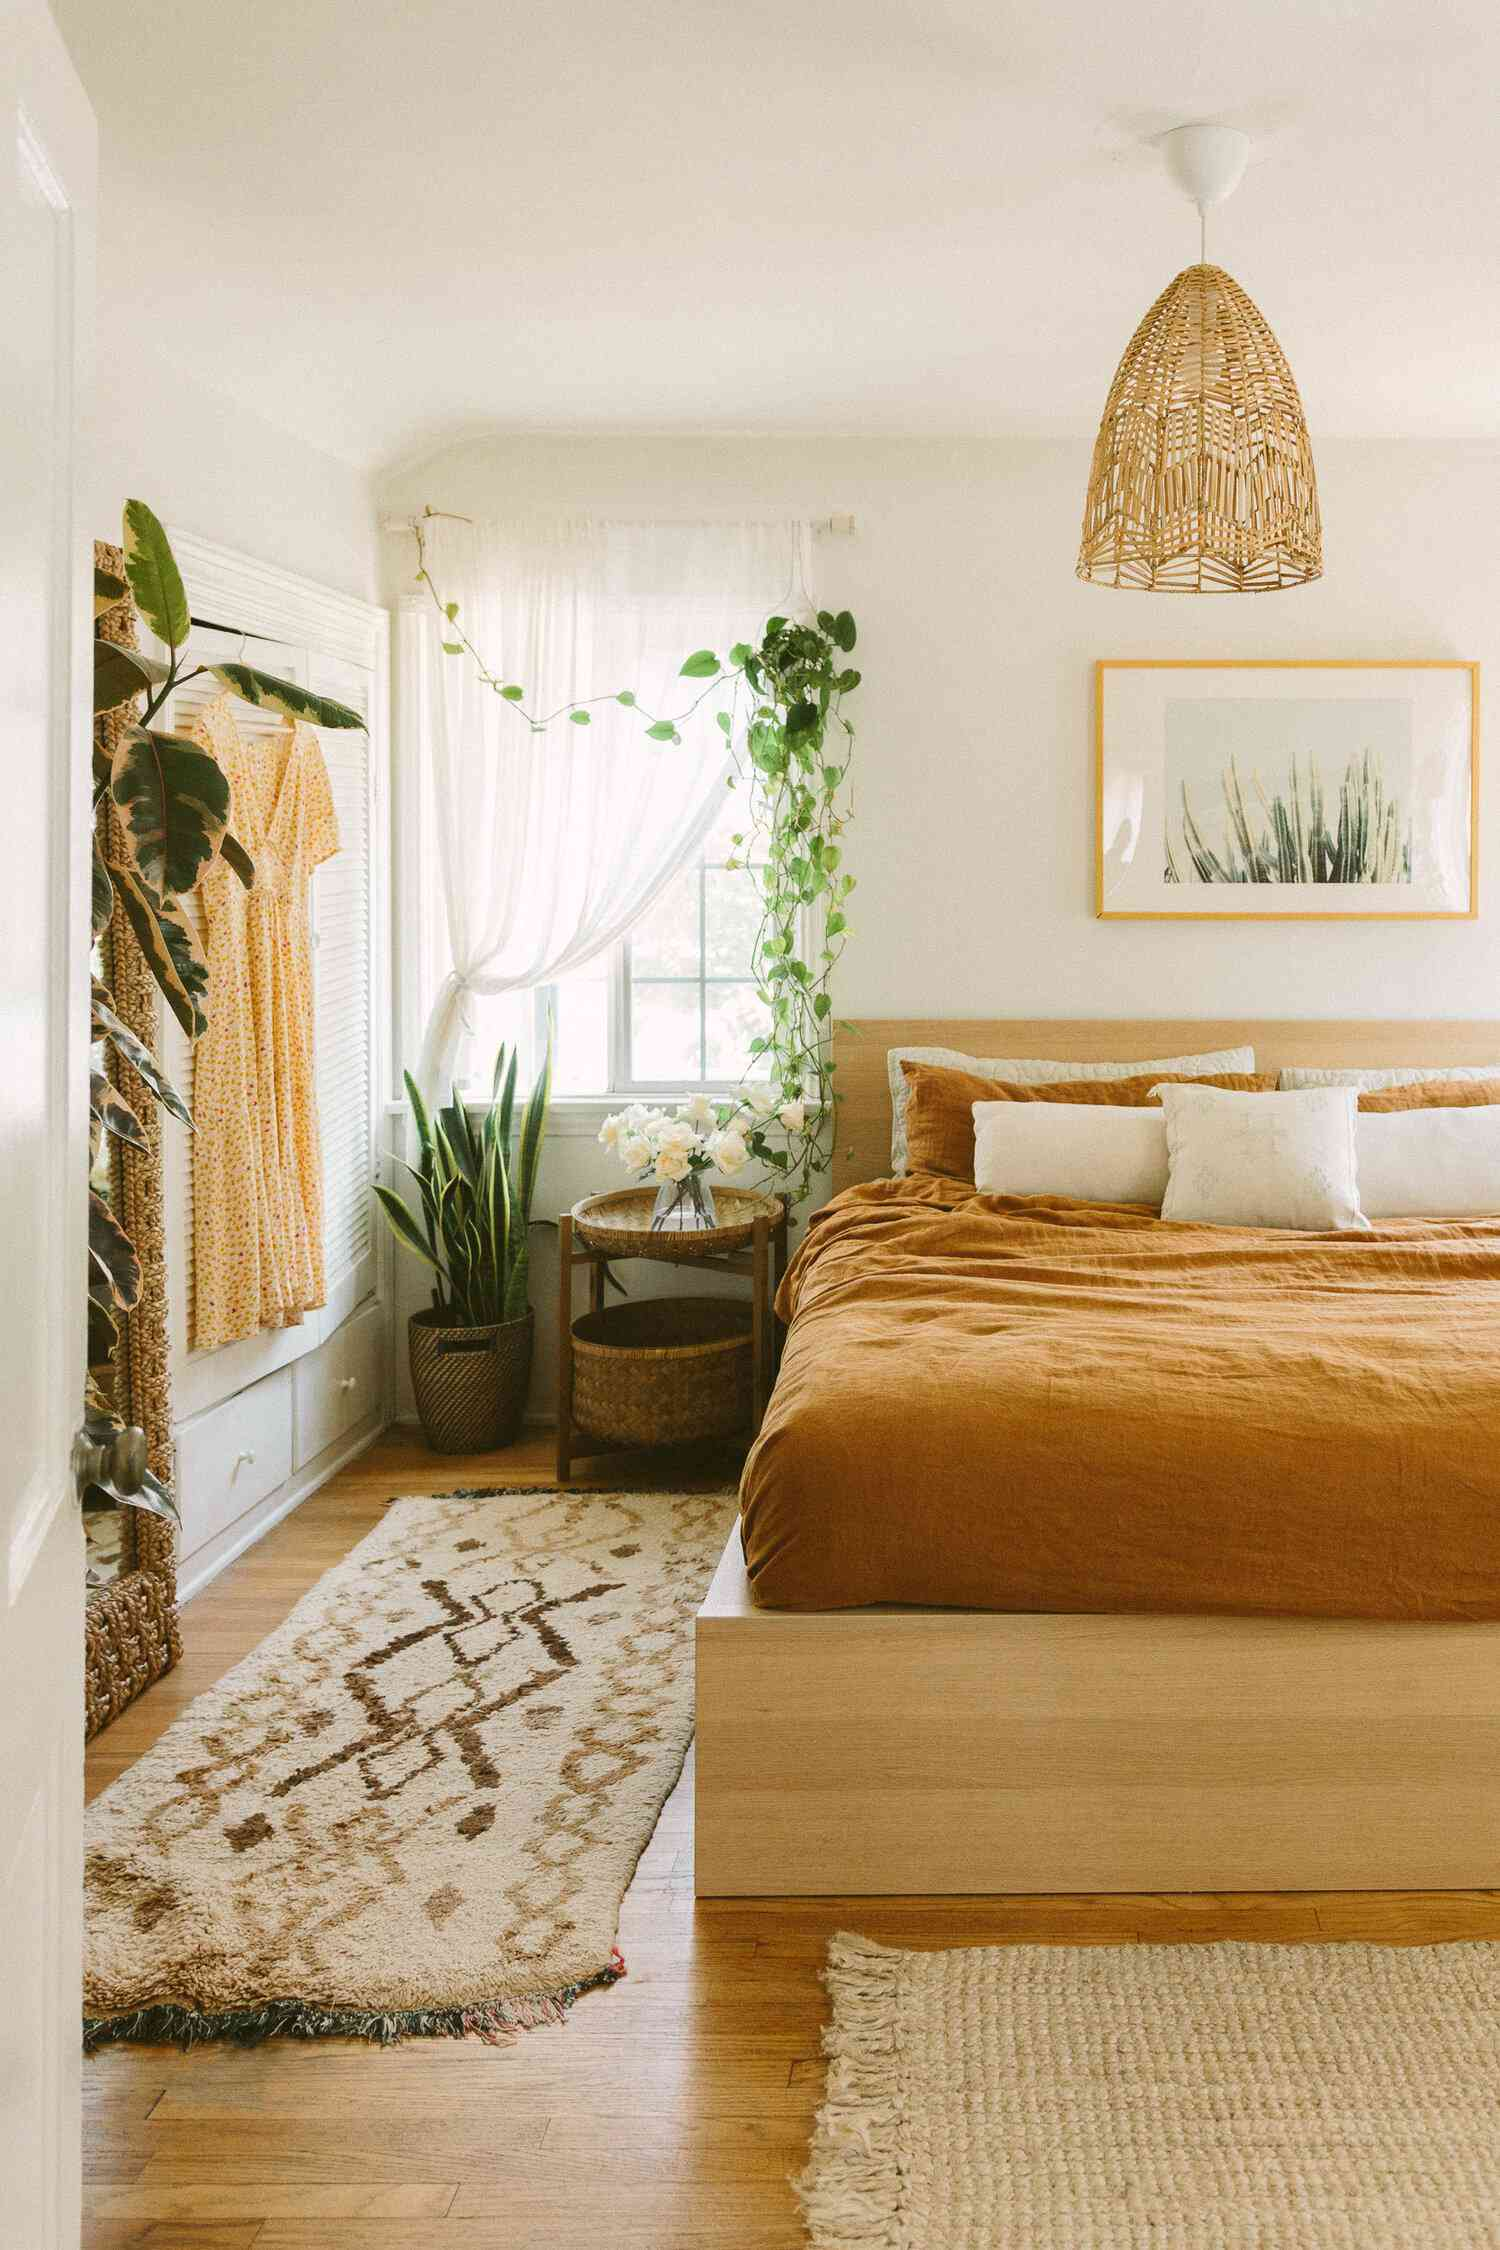 Boho bedroom with wood bed